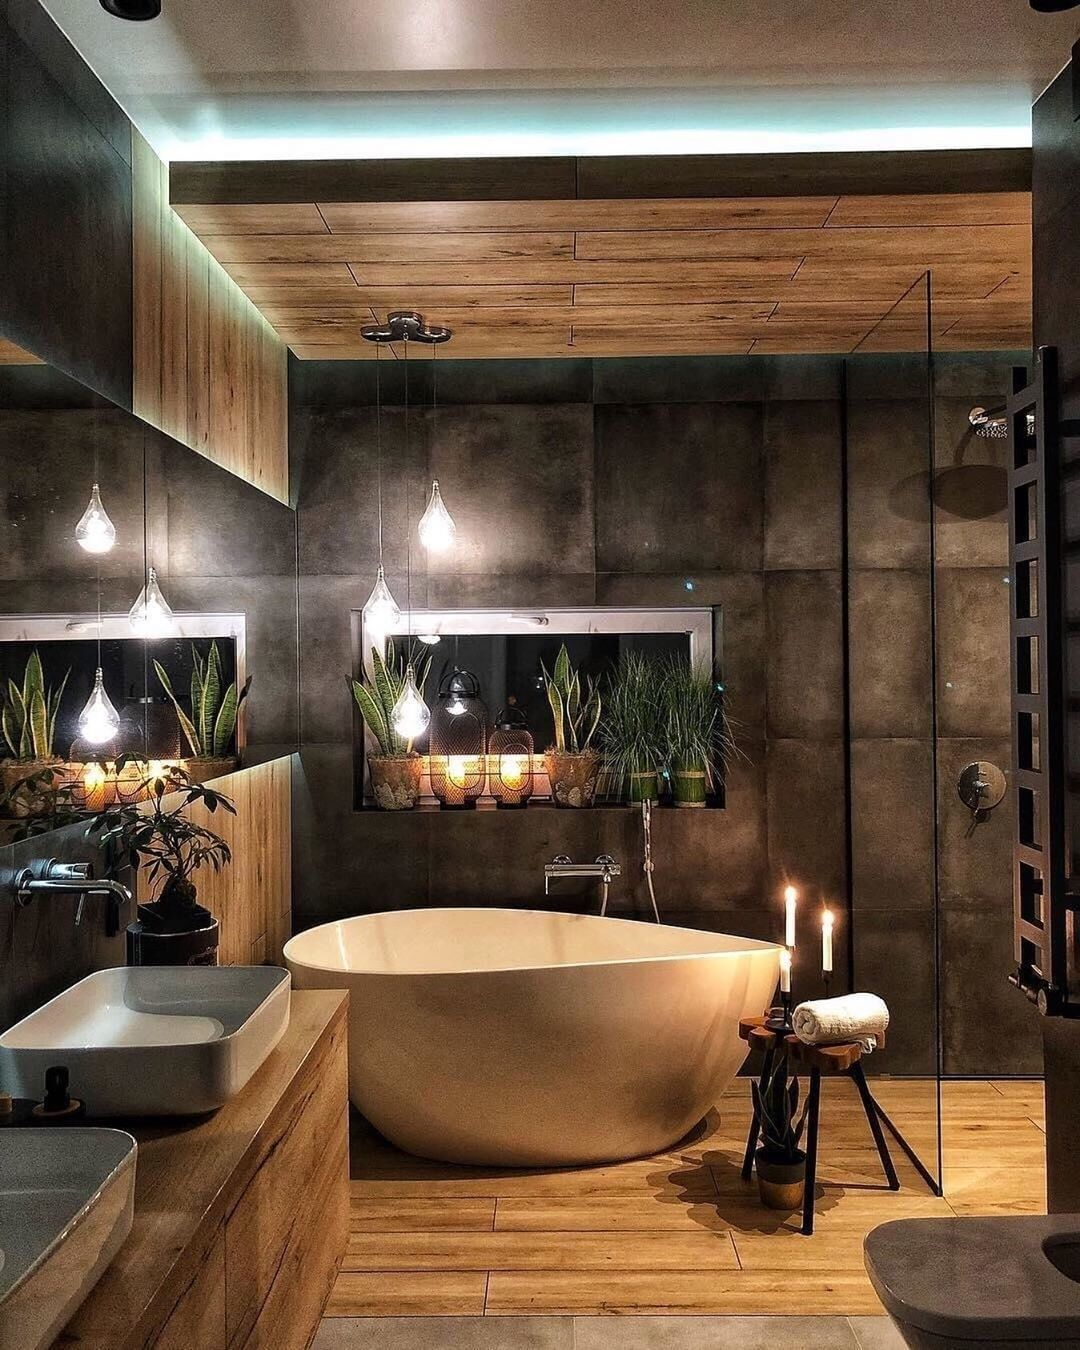 Who Would Like To Have A Private Spa At Home Looking For Bathroom Bathr Bathroom Interior Design Industrial Bathroom Design Bathroom Interior